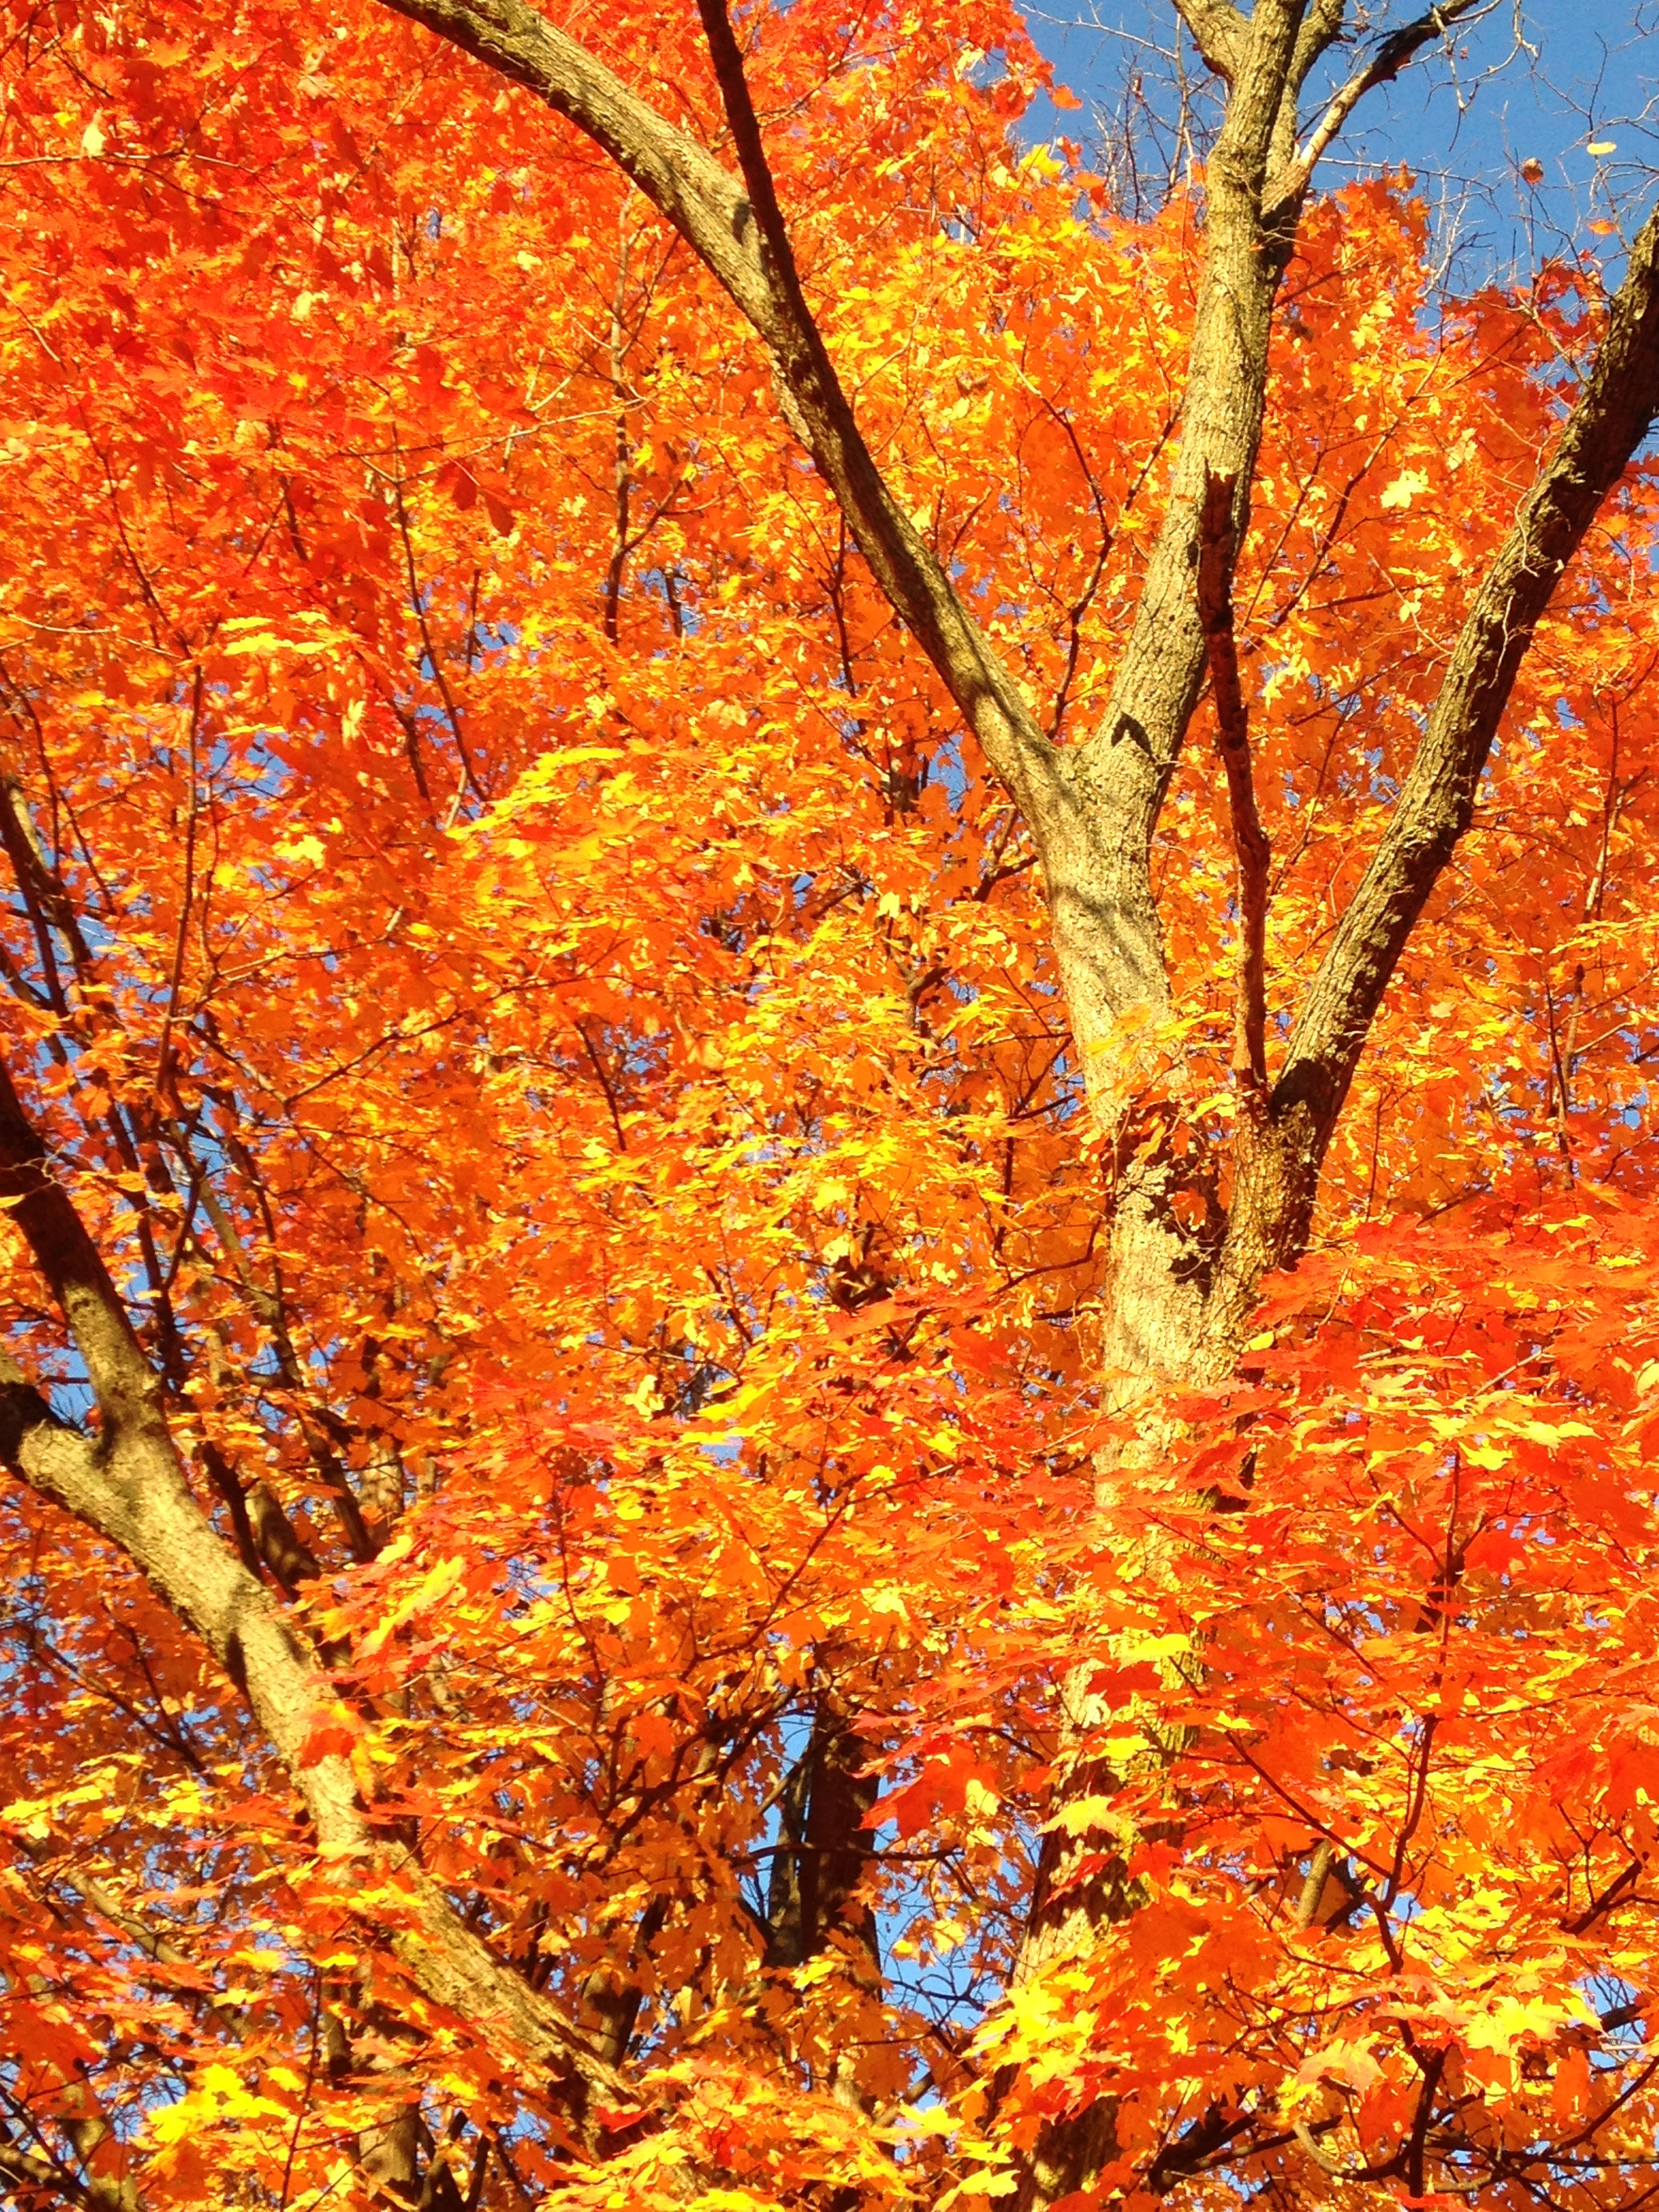 This wonderfully fiery sugar maple is on the pedestrian path between Lederman Science Center and Wilson Hall. Photo: Jamieson Olsen, AD